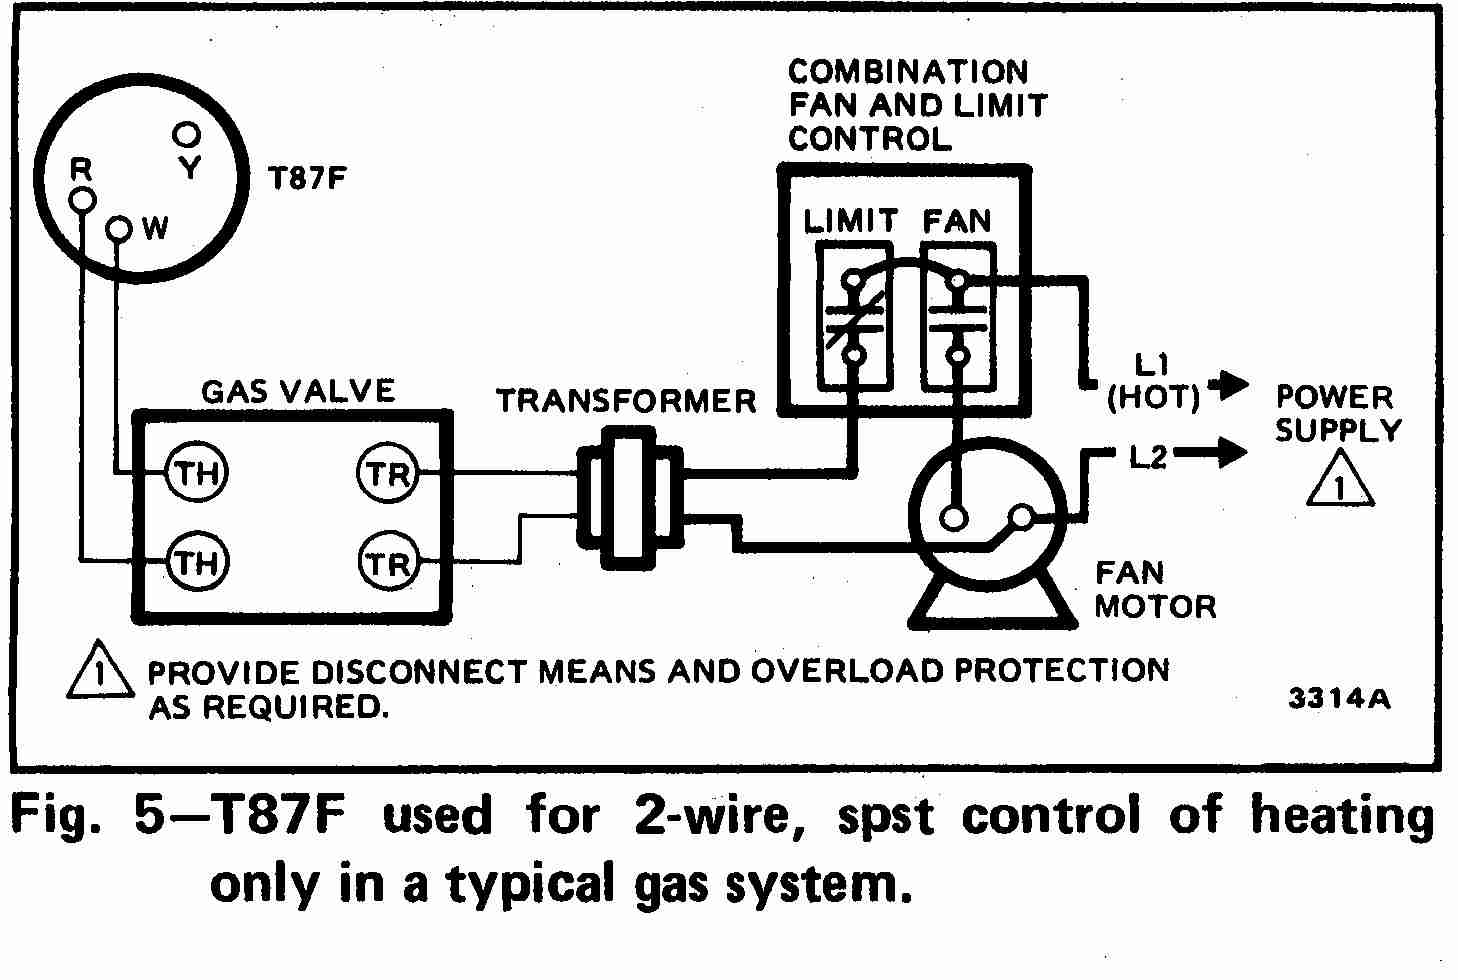 TT_T87F_0002_2Wg_DJF room thermostat wiring diagrams for hvac systems 2 wire thermostat diagram at mifinder.co